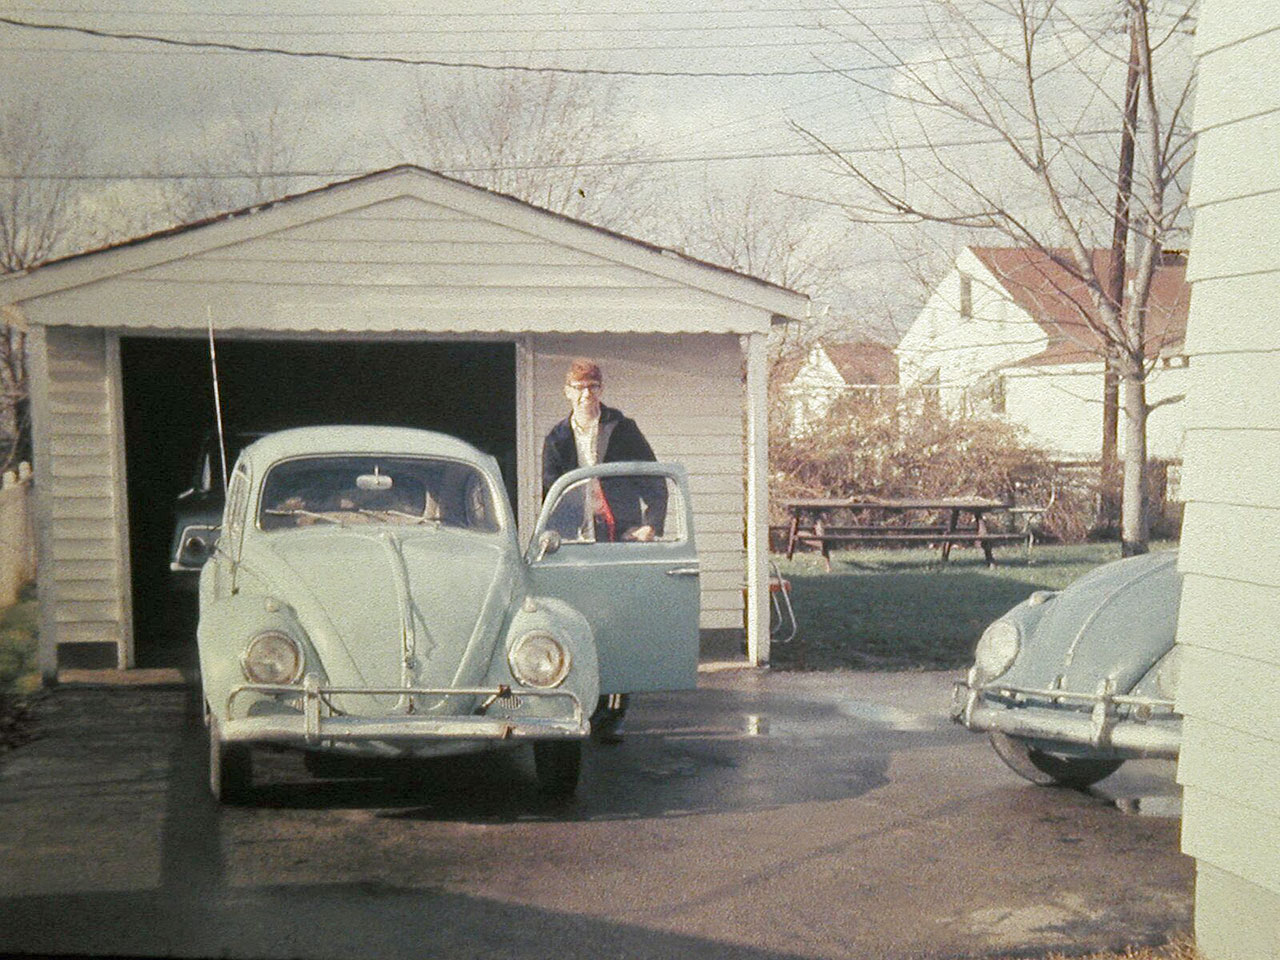 Dave's VW Beetle 1968